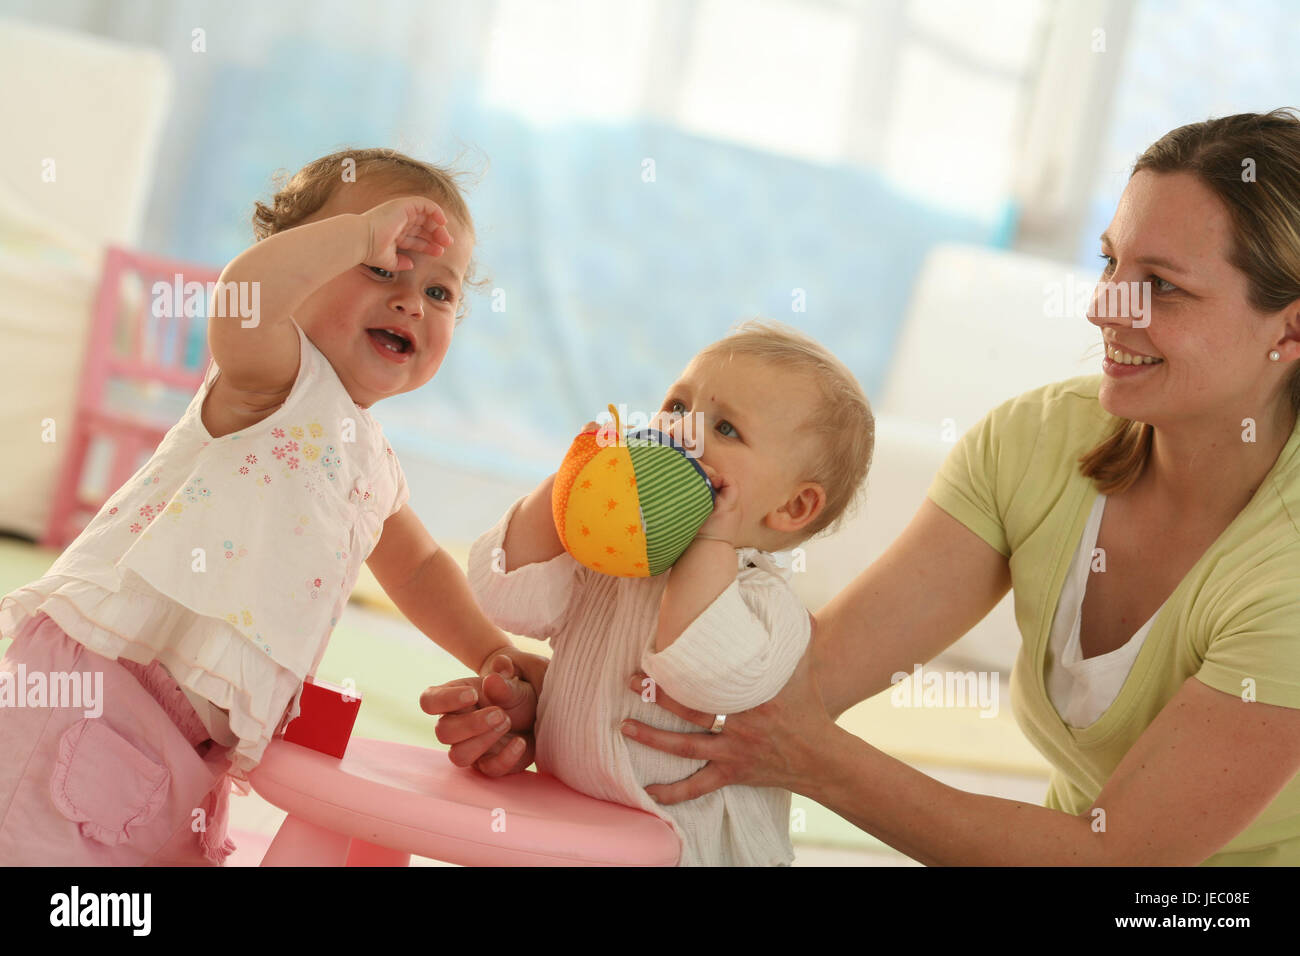 Babies, 9 months, mother, ball, play, get up, ball, dressed, blond, jealousy, discoveries, friends, reach, group, - Stock Image